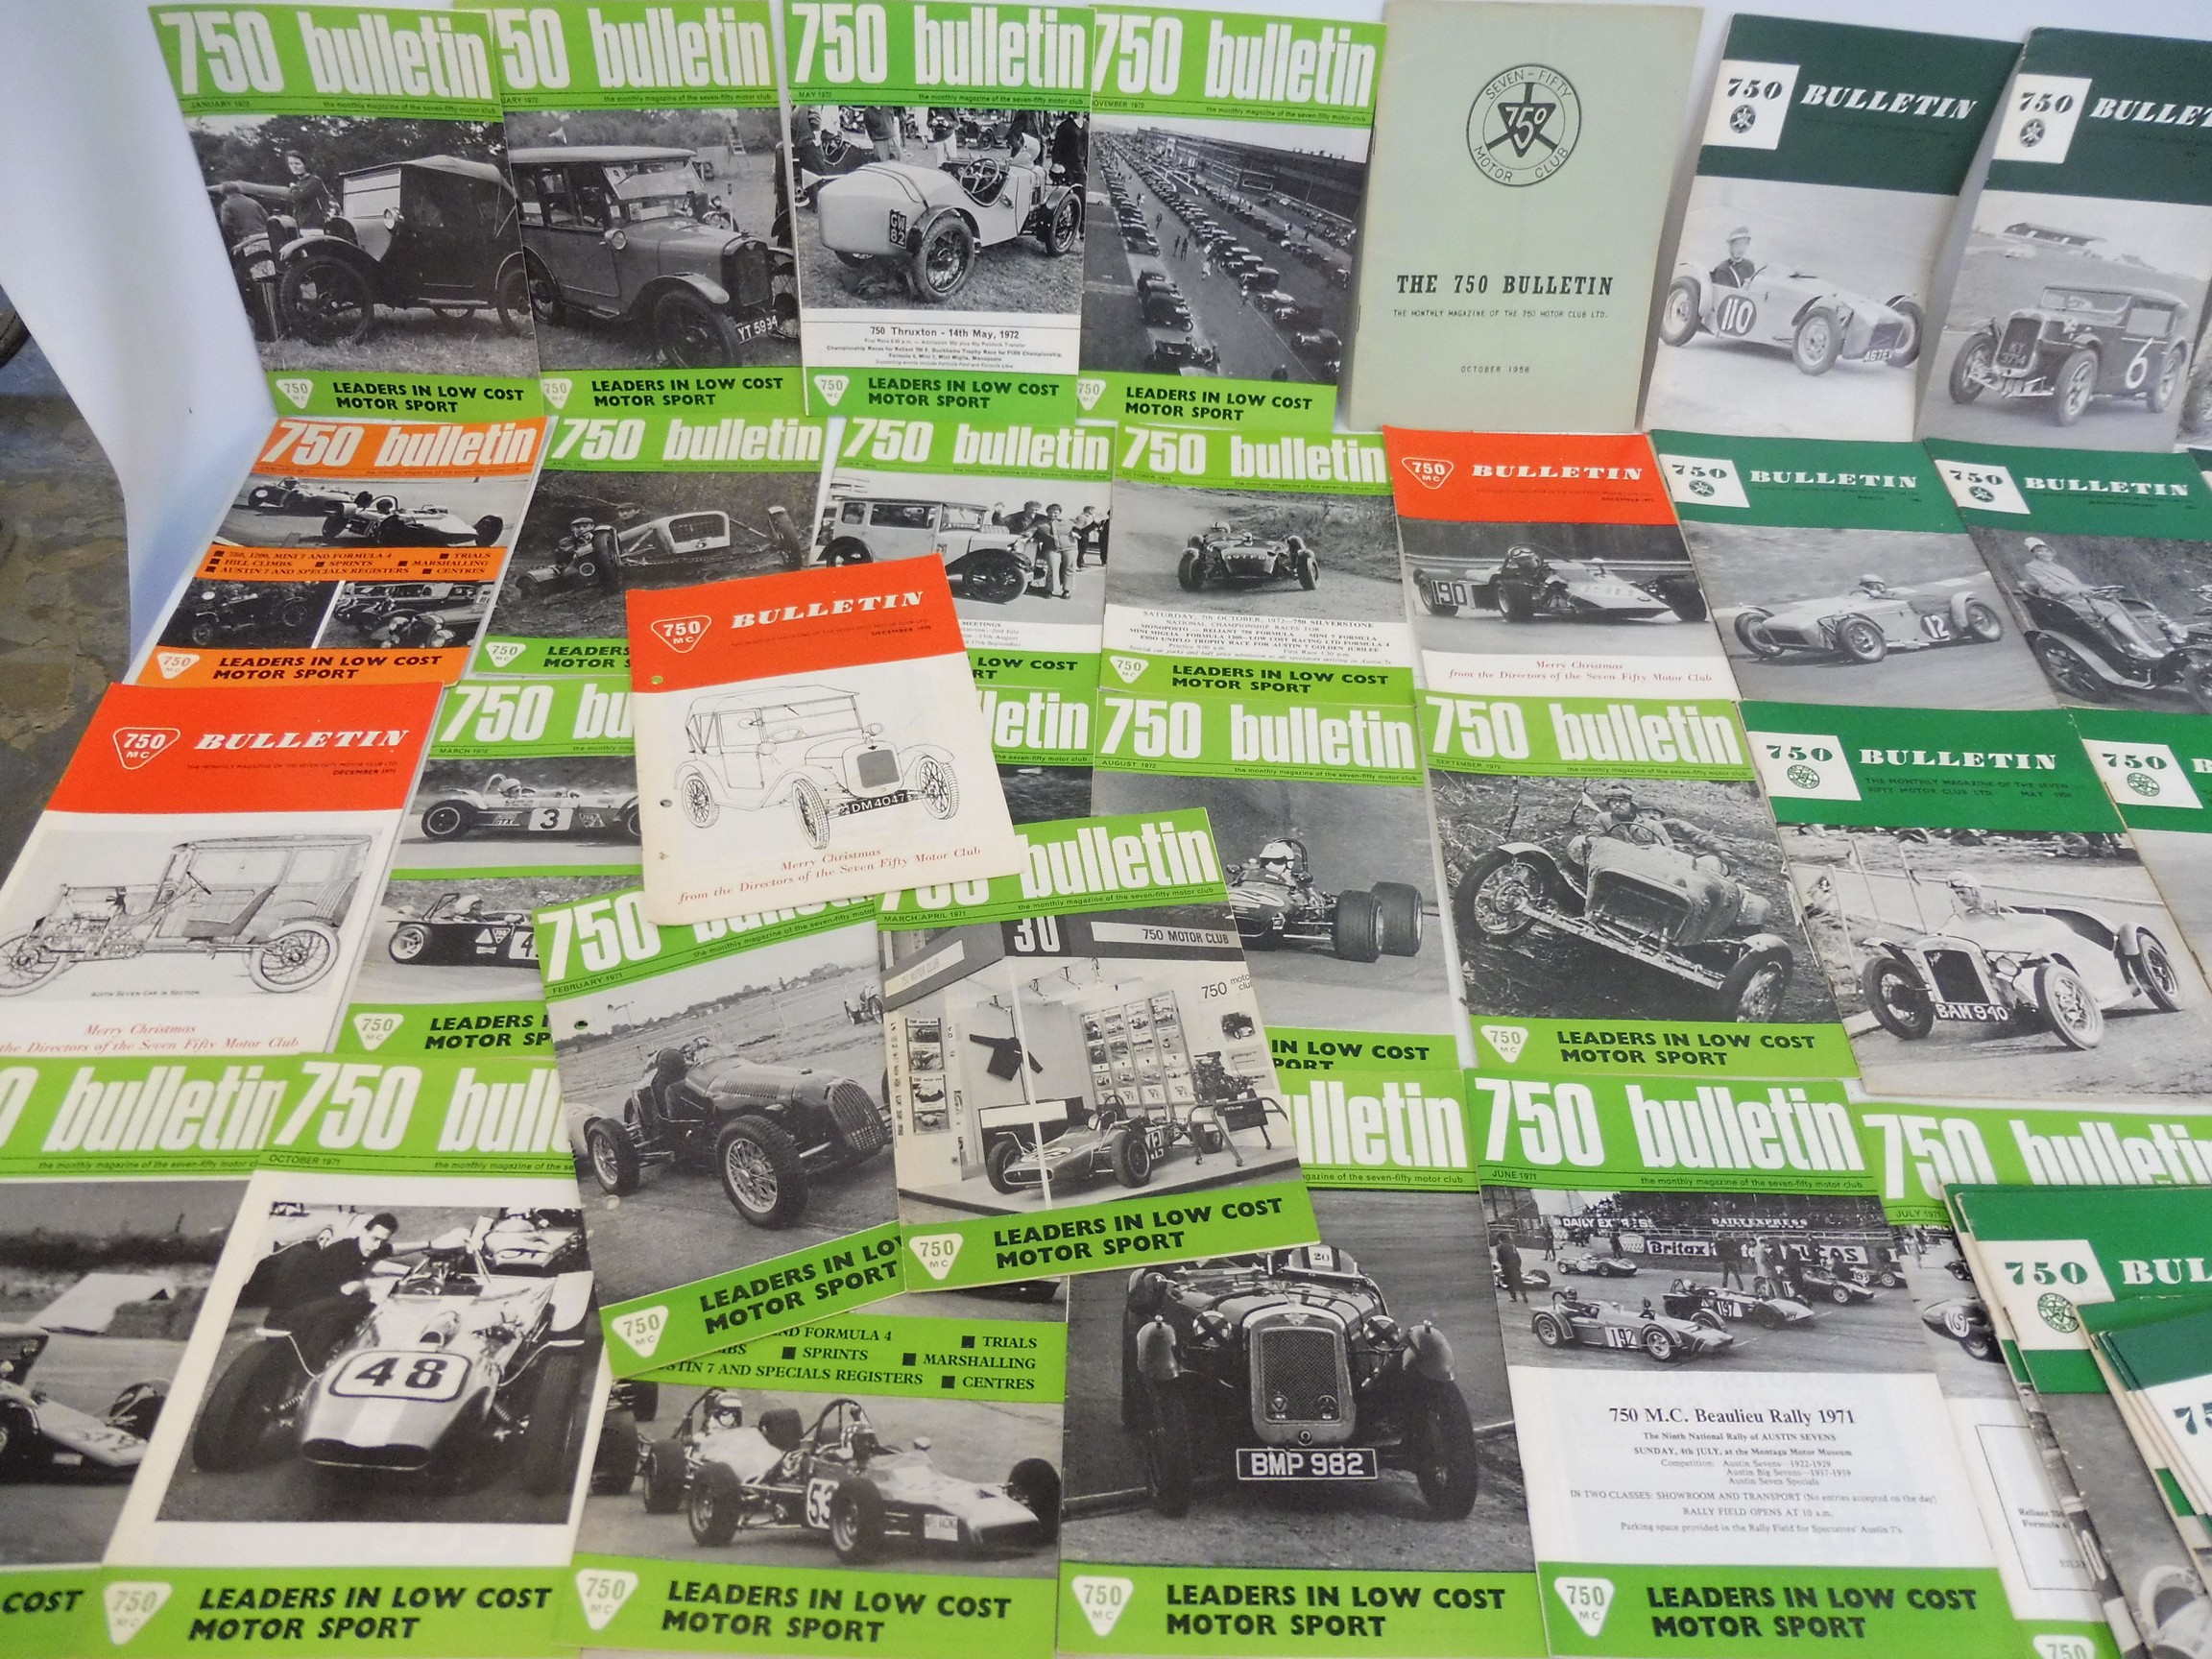 A small collection of 750 Club bulletins and related ephemera, various issues from 1958 including - Image 2 of 3